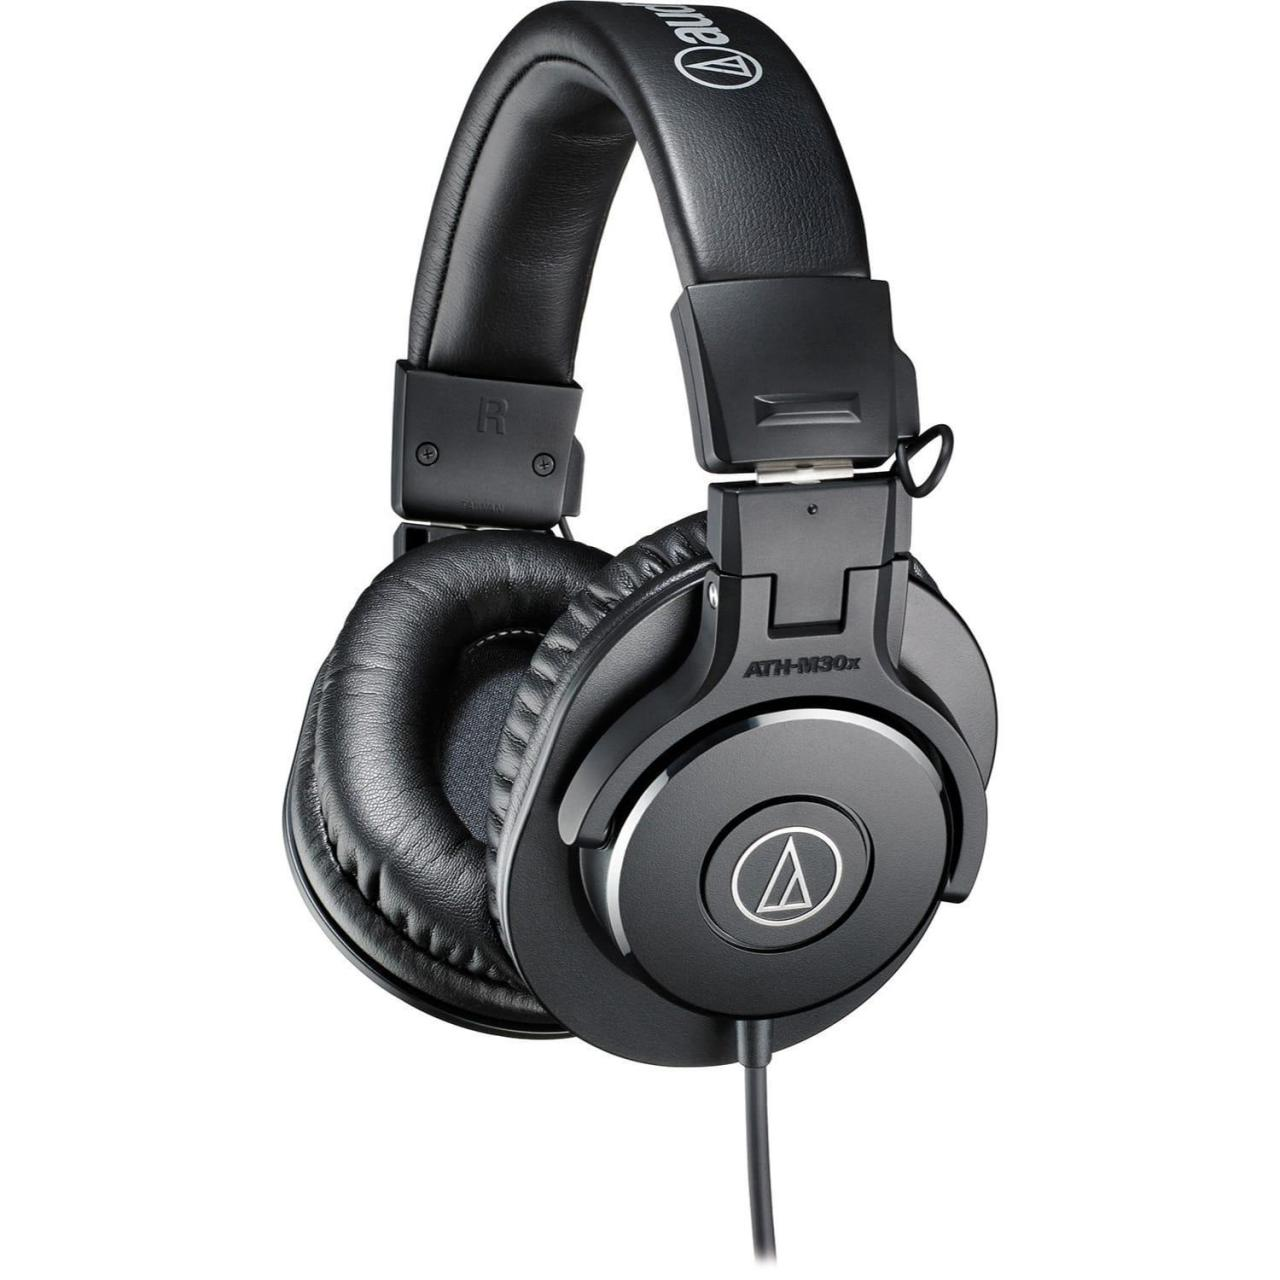 Quality Recording Audio-Technica ATH-M30x Professional Monitor Headphones for sale